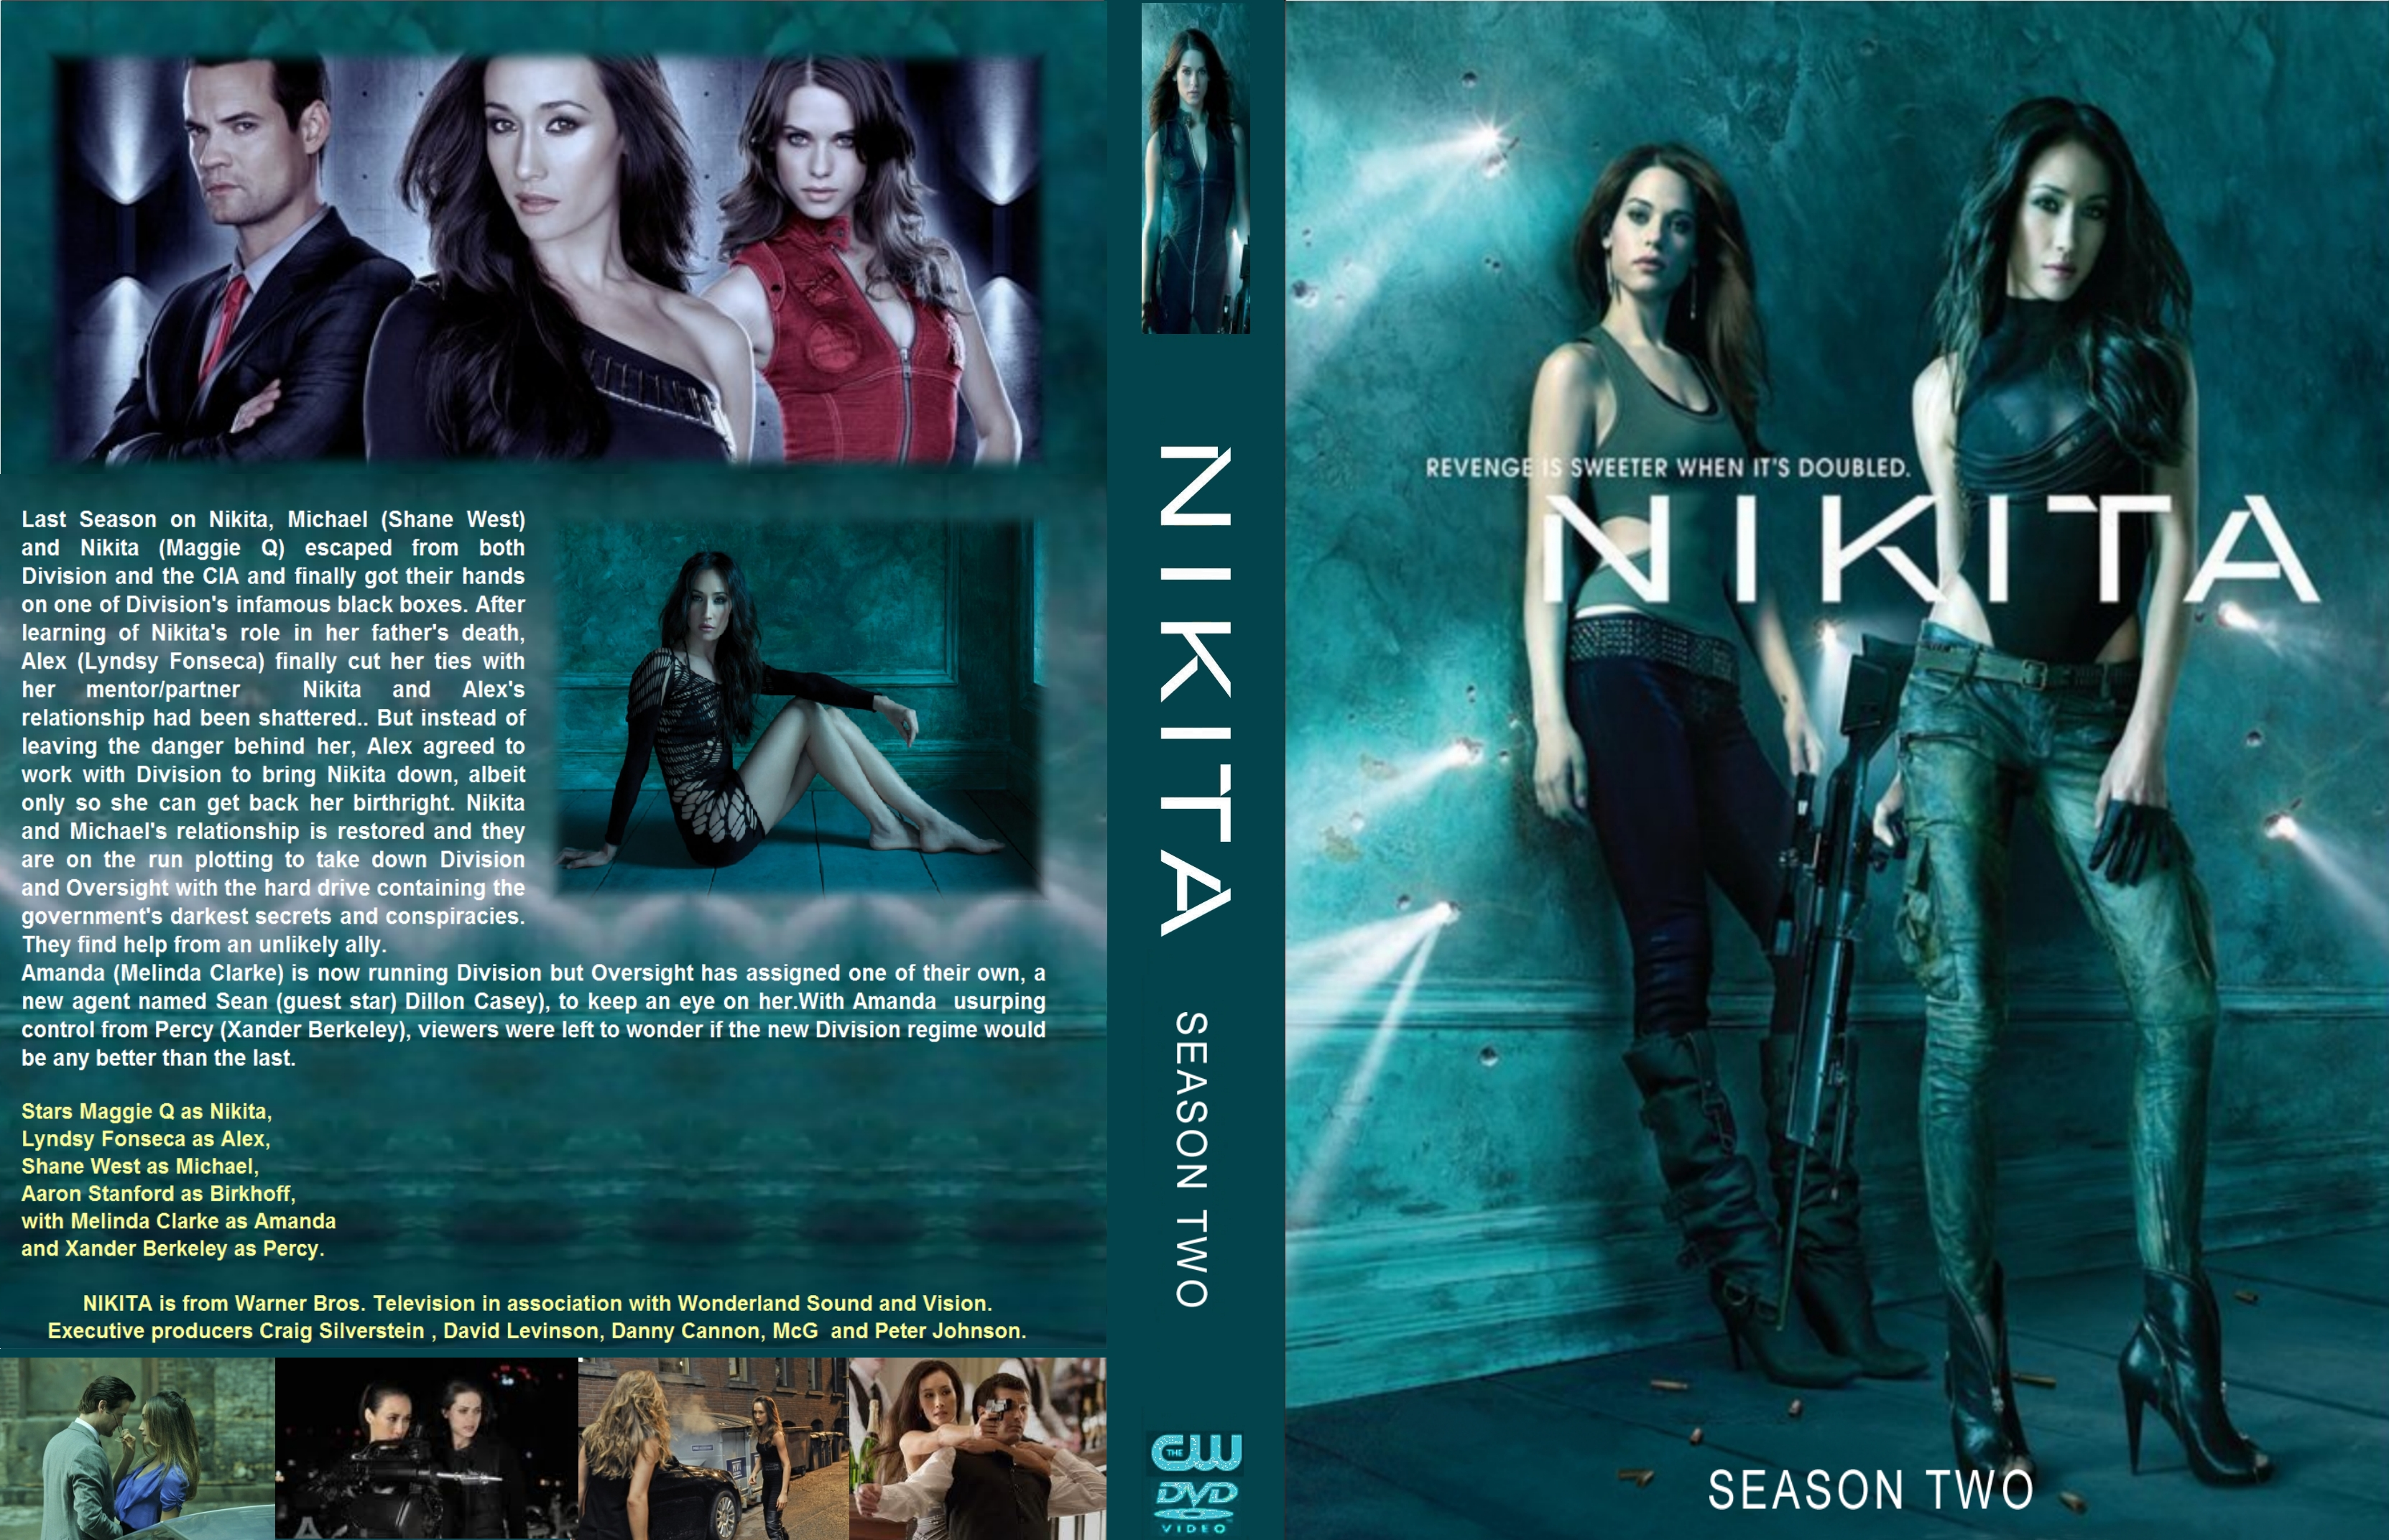 Book Cover Series Imdb : Covers box sk nikita season imdb dl high